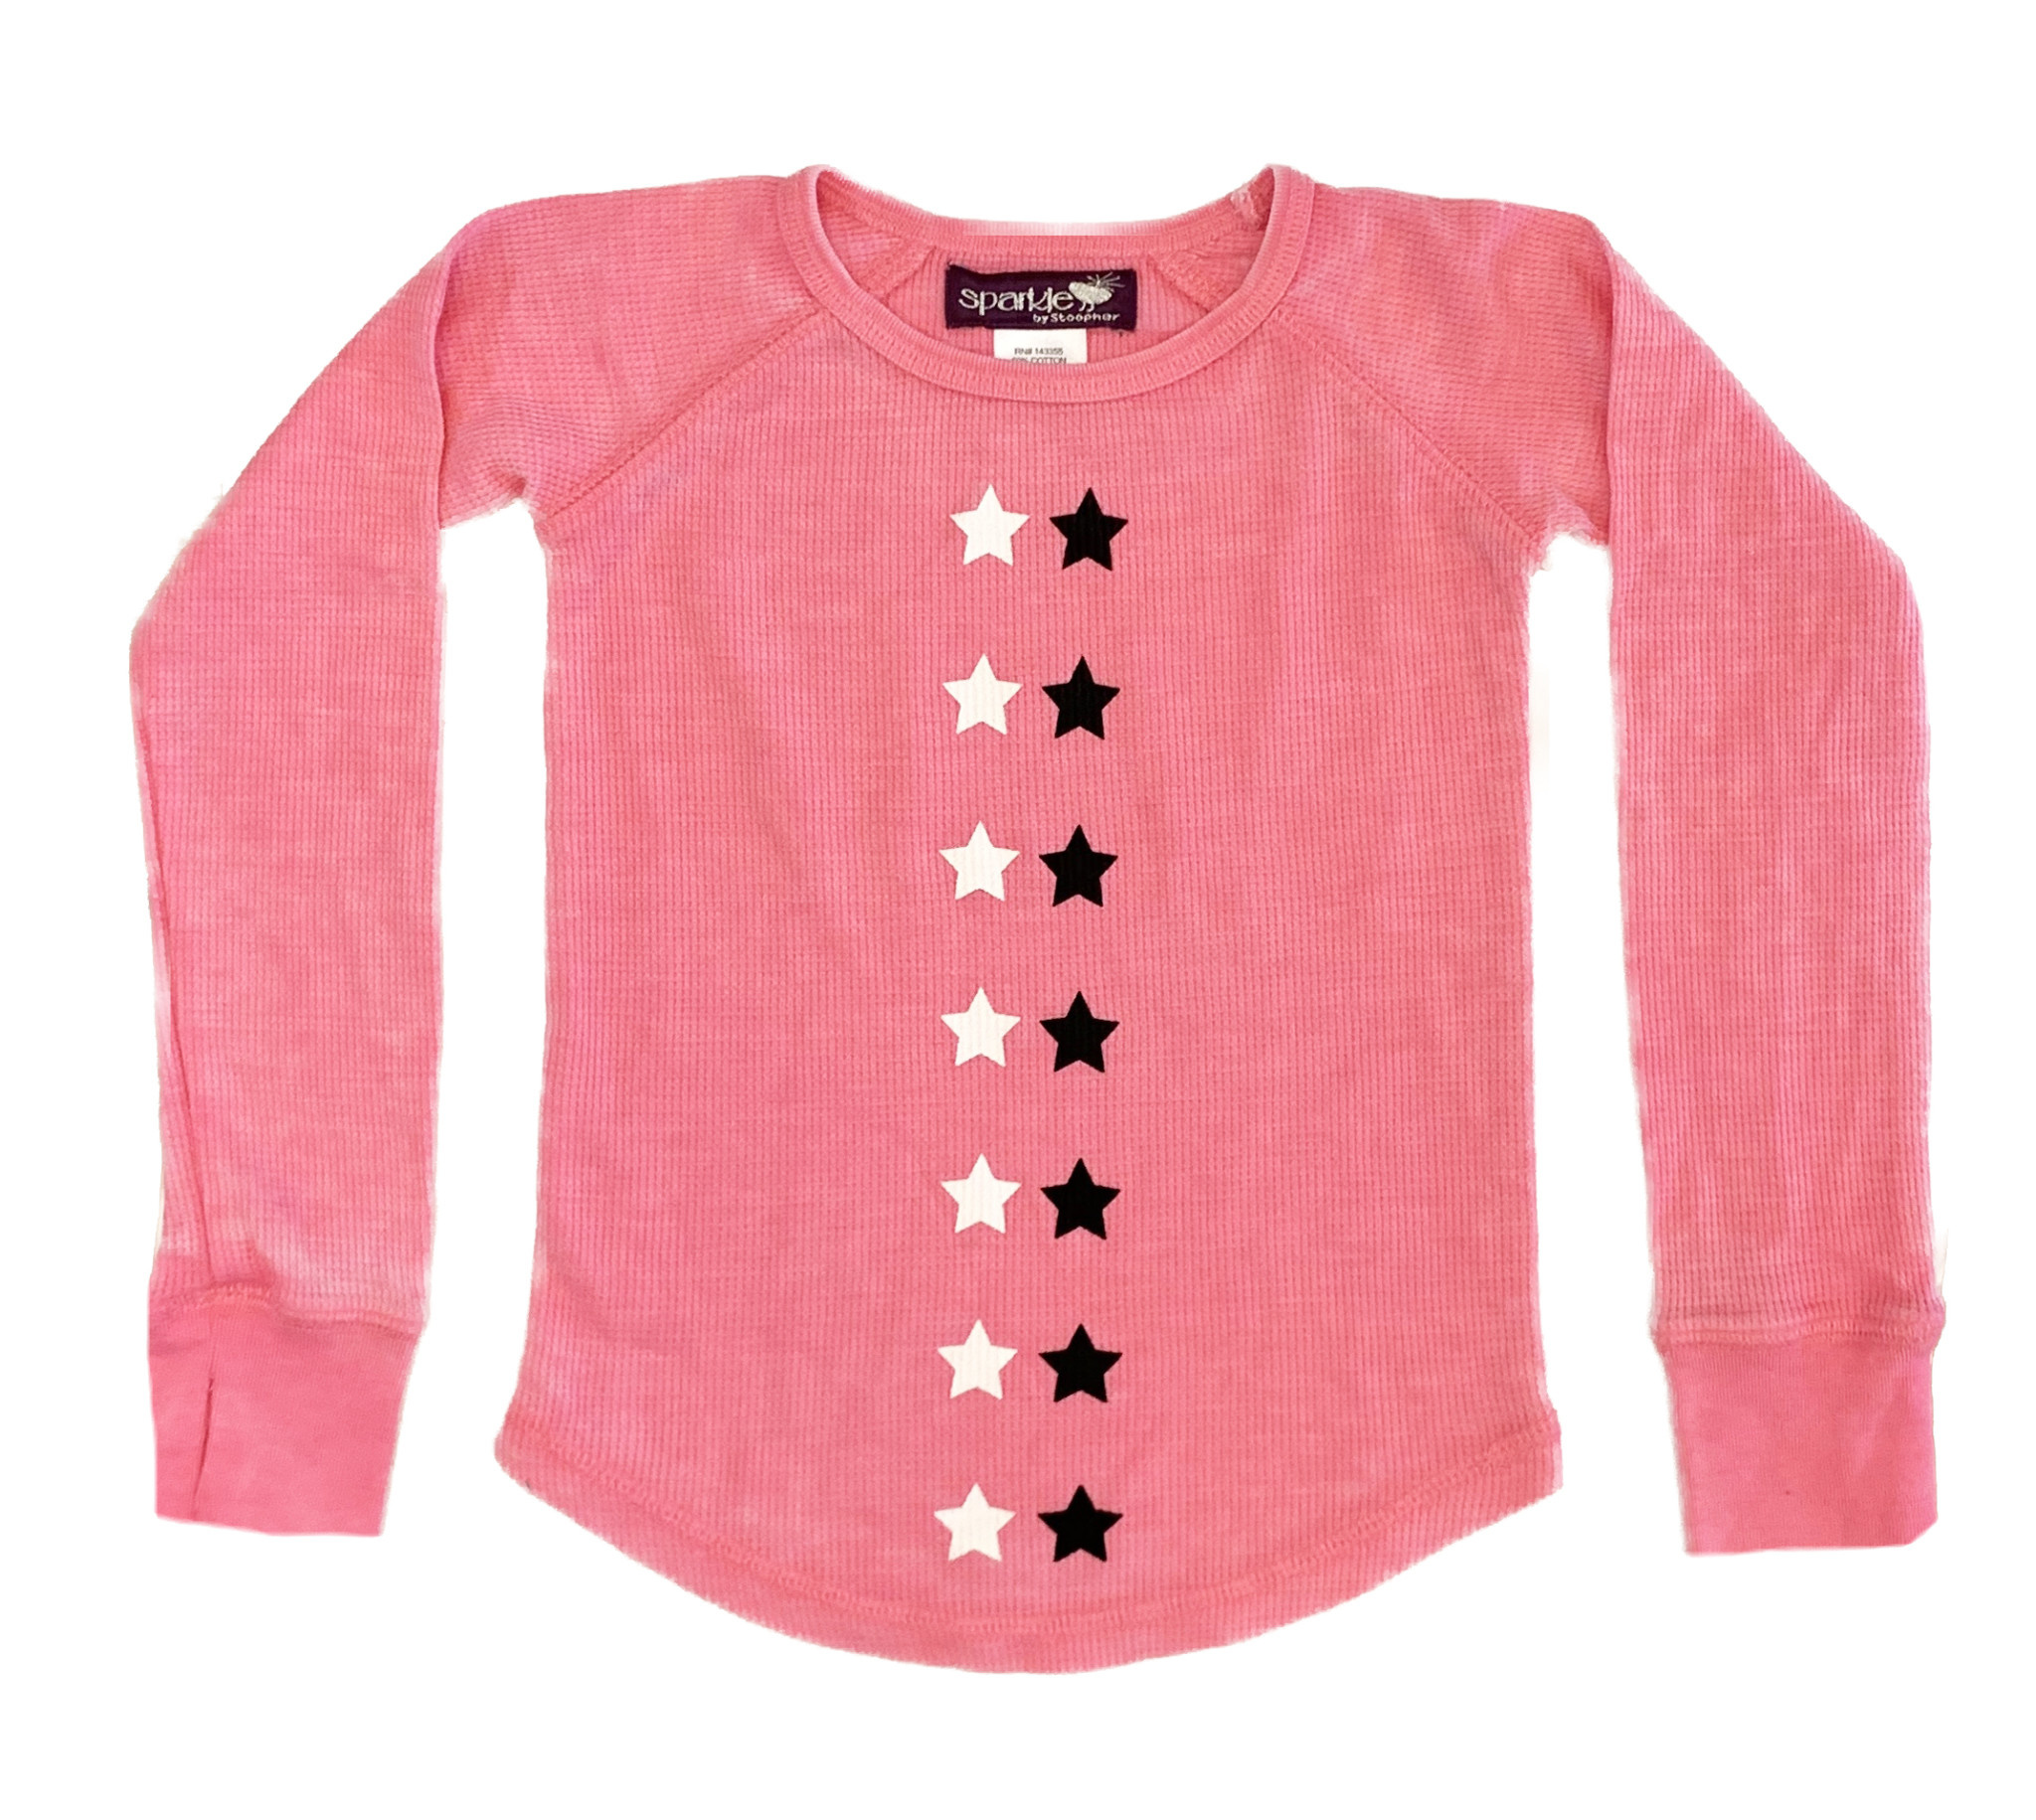 Sparkle Pink Star Line Thermal Top